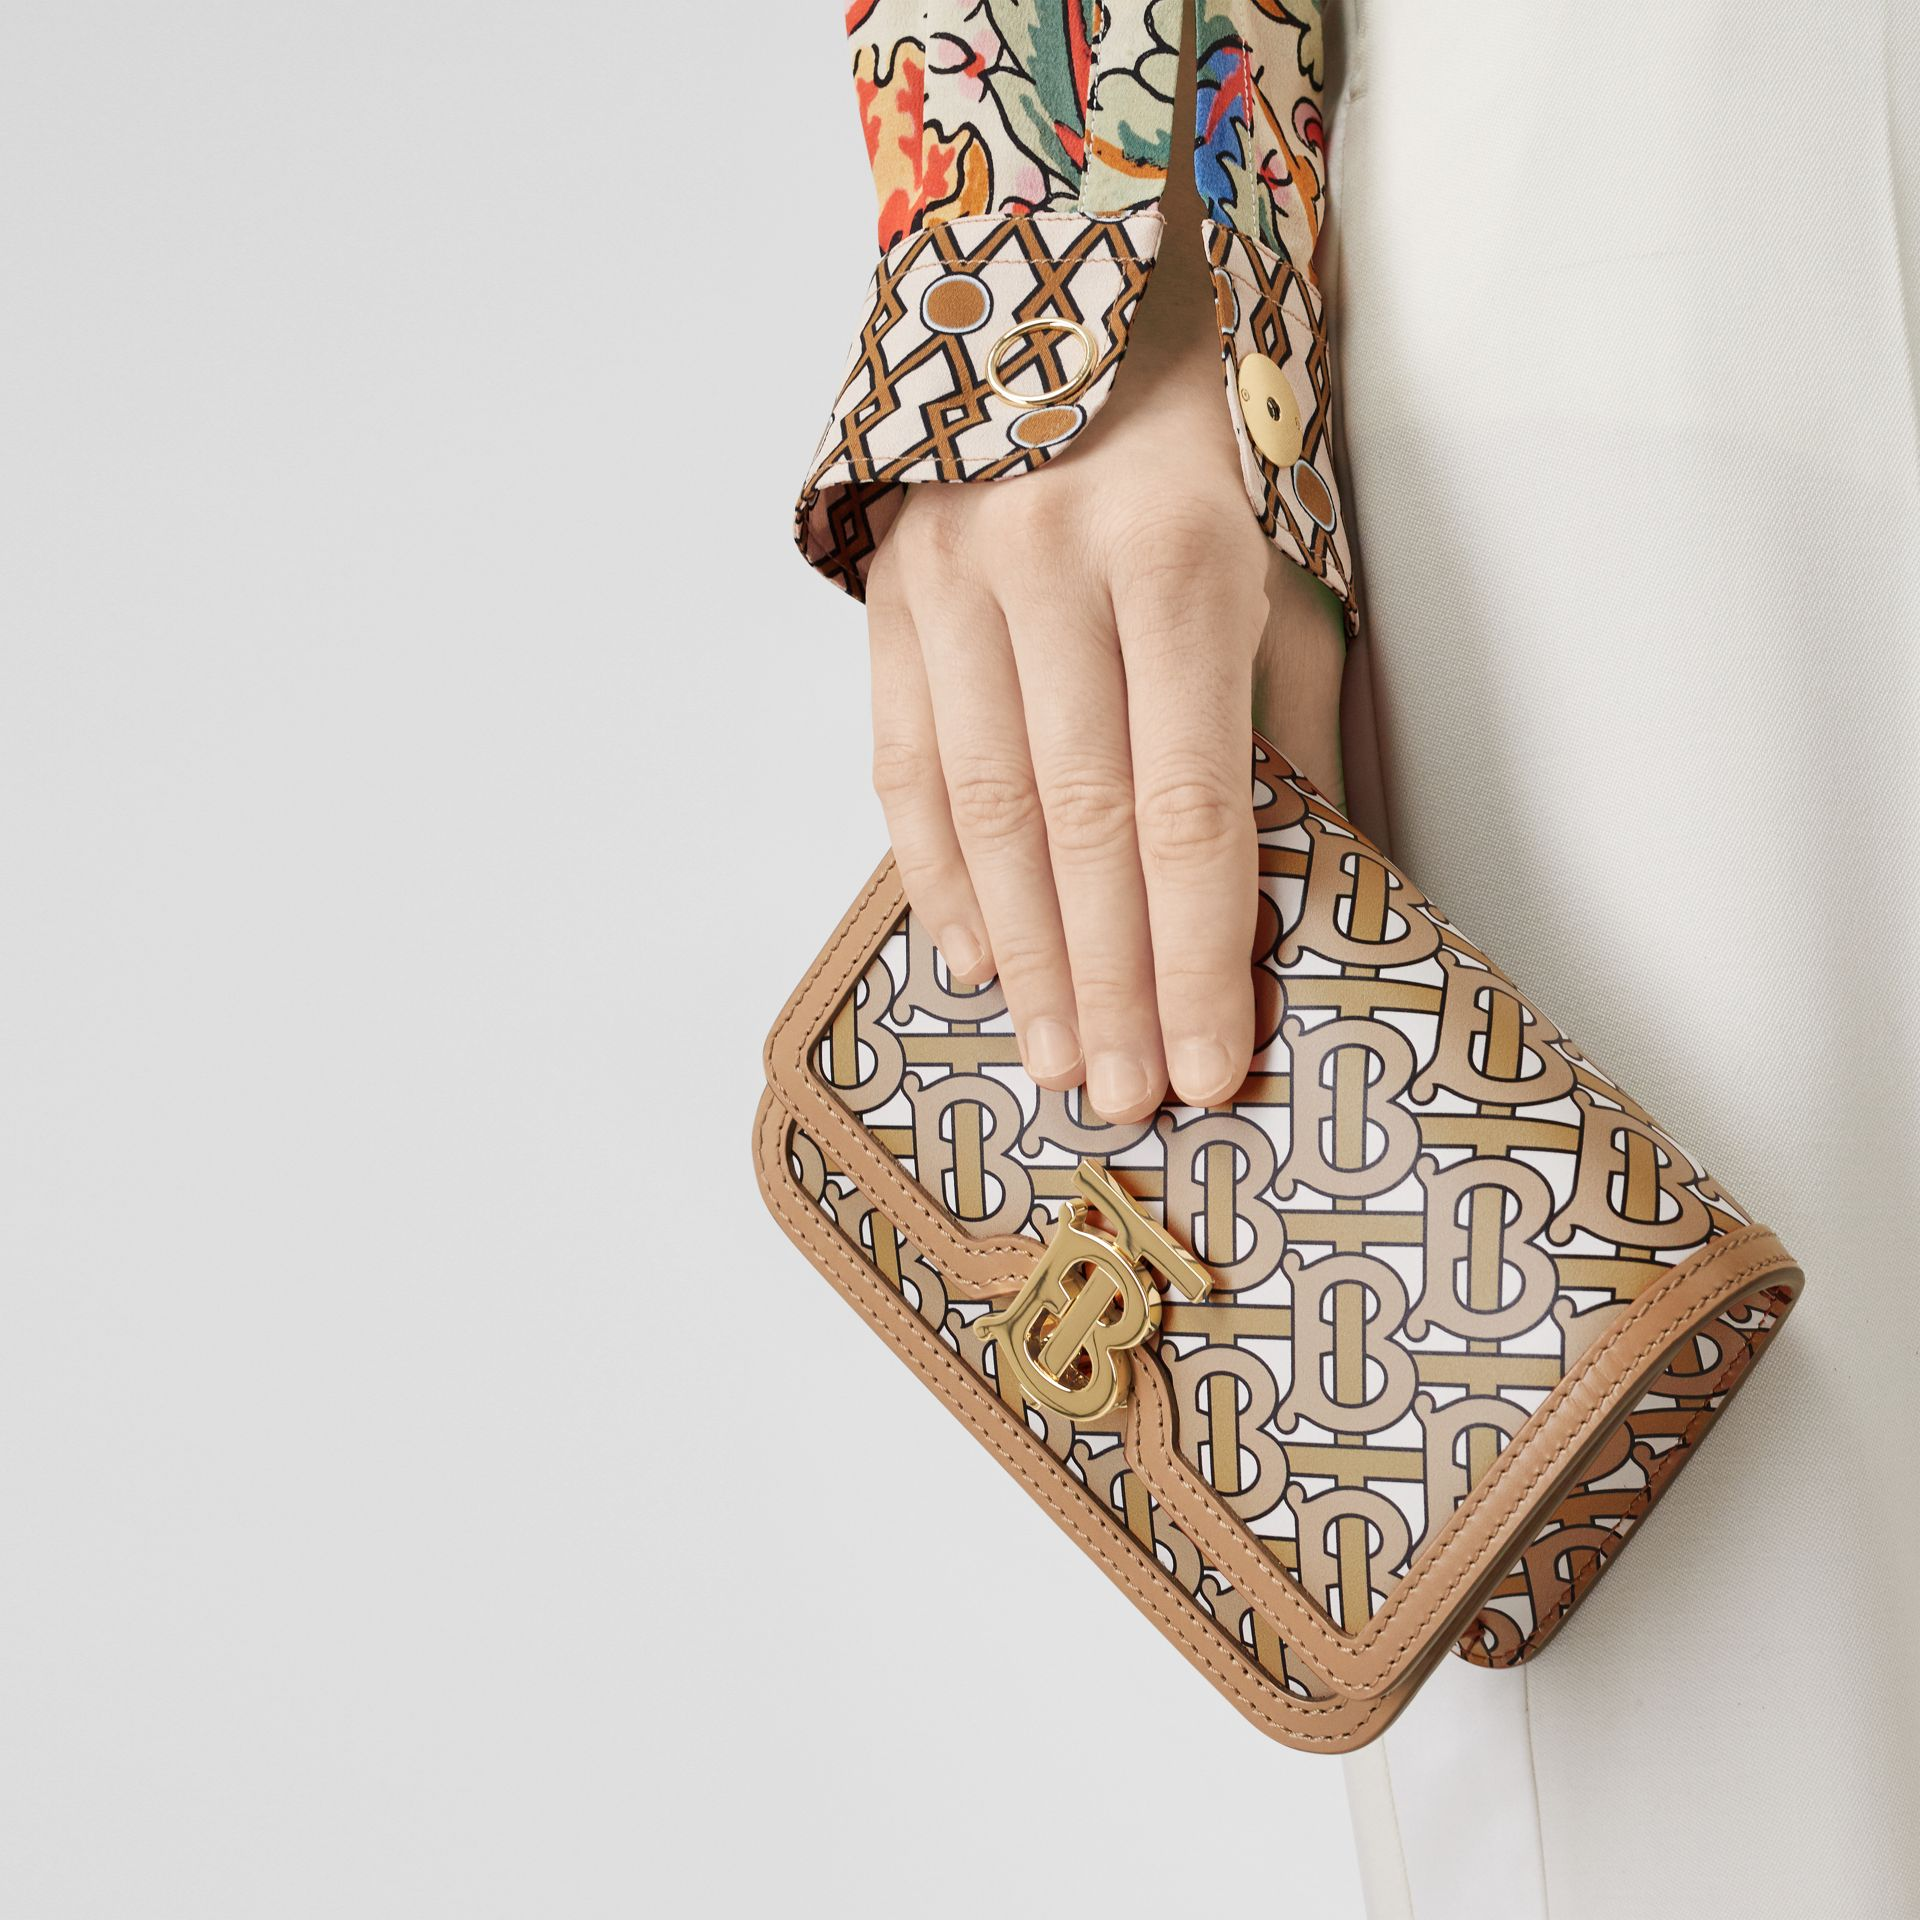 Mini Monogram Print Leather TB Bag in Beige - Women | Burberry - gallery image 2